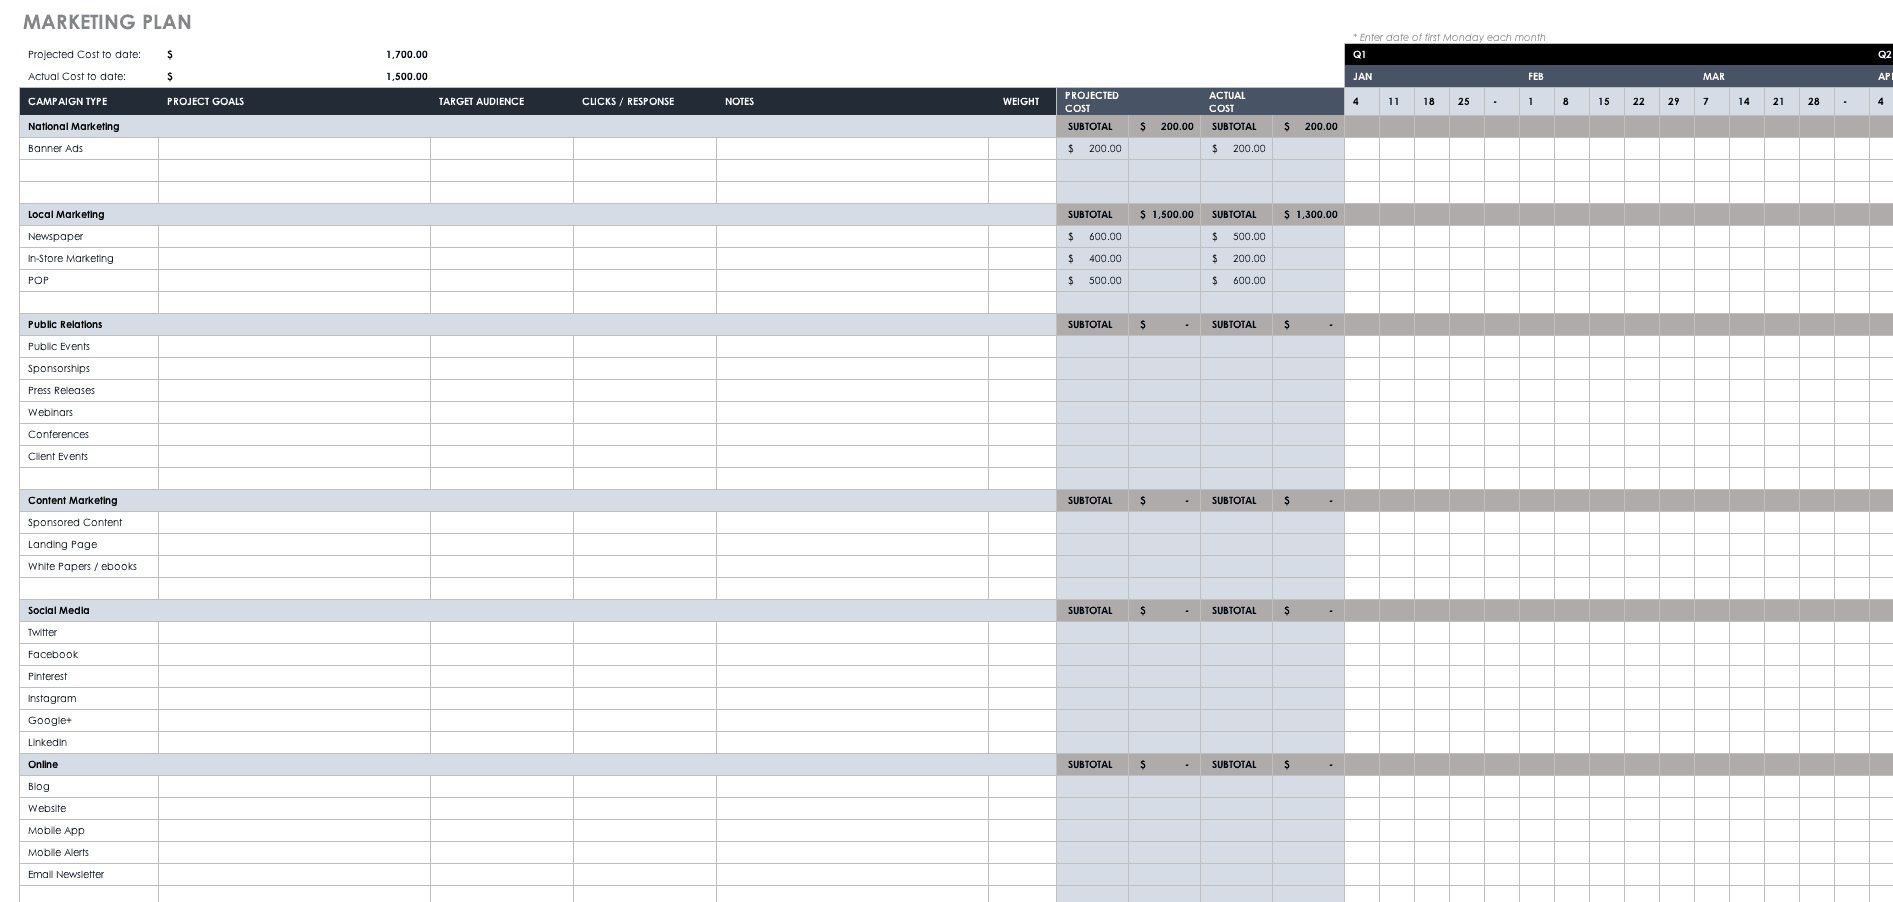 005 Excellent Busines Plan Template Excel Image  Financial Free ContinuityFull